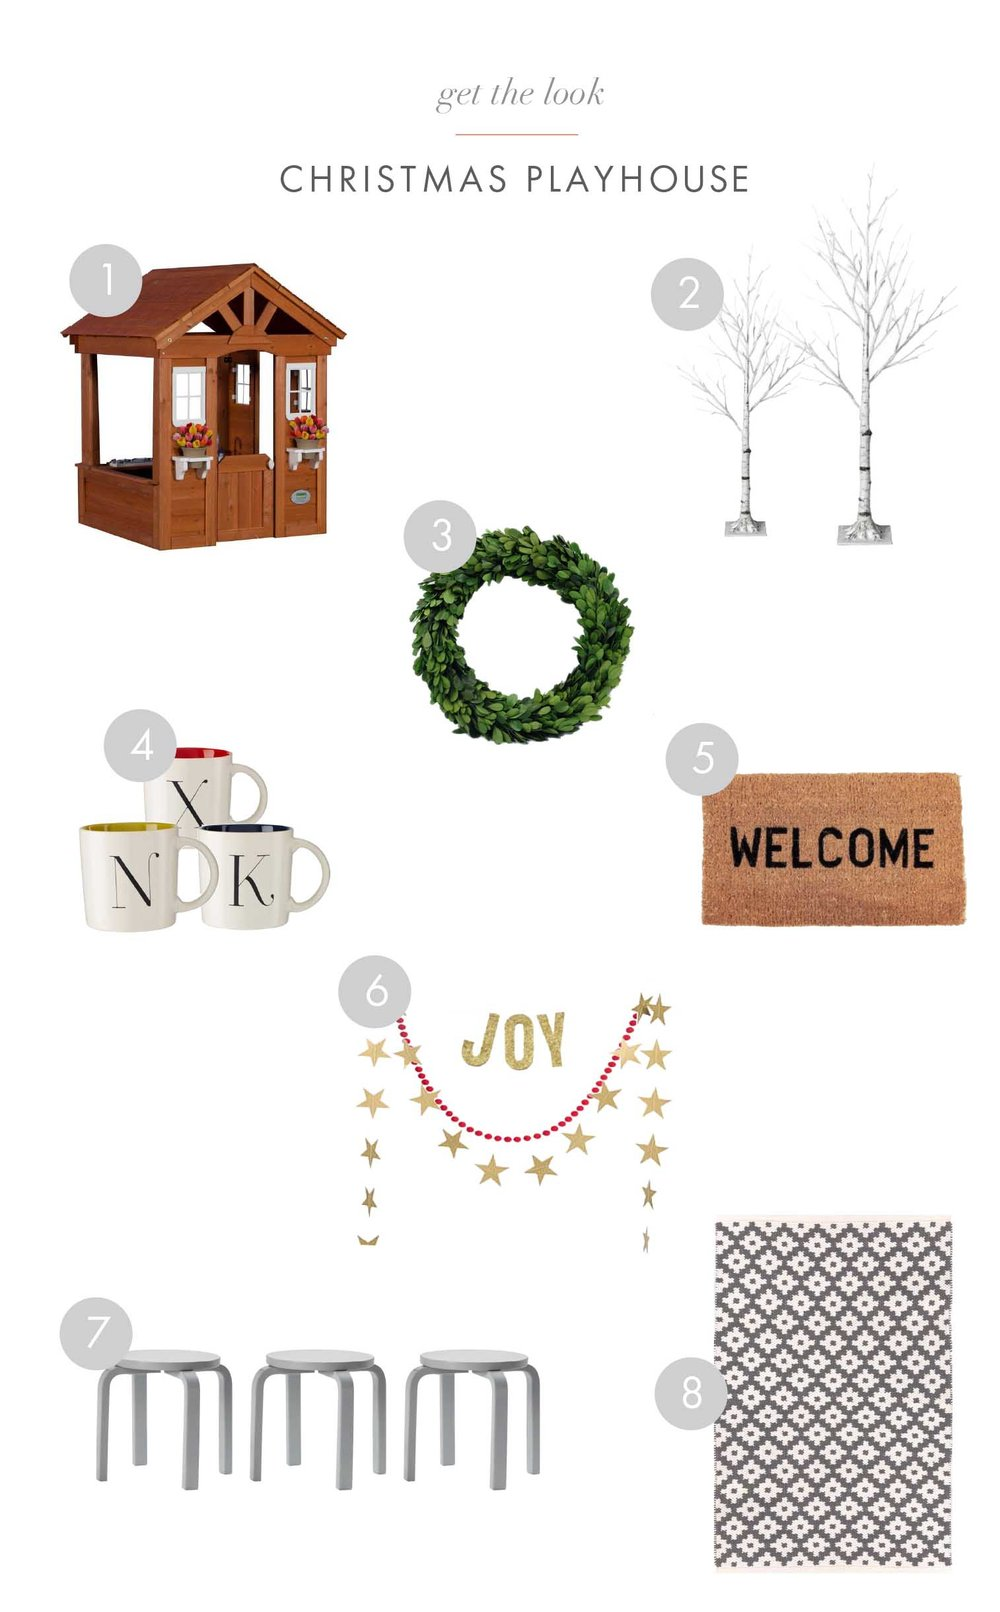 'Get the look' design board for Christmas playhouse